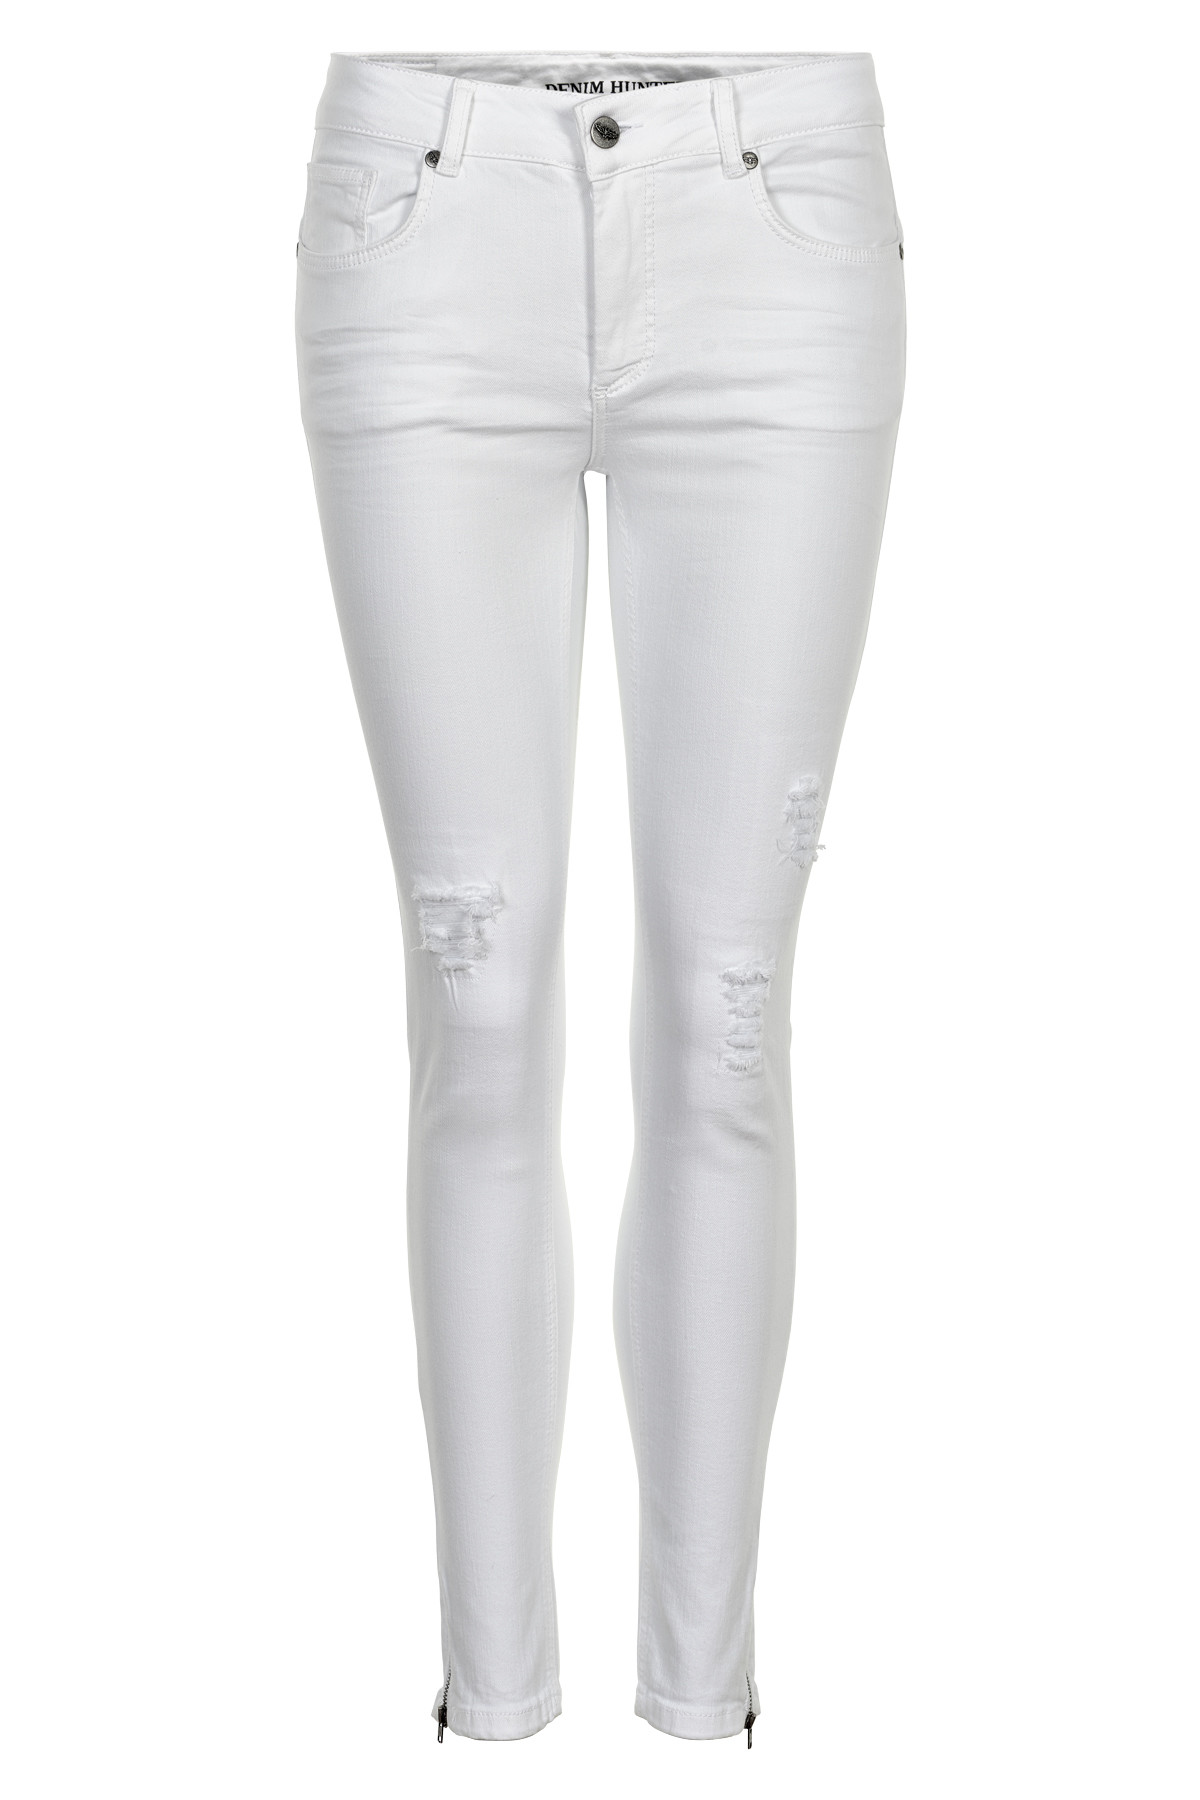 Image of   Denim Hunter CELINA ZIP TORN JEANS 10701894 O (Optical White 30001, 29)